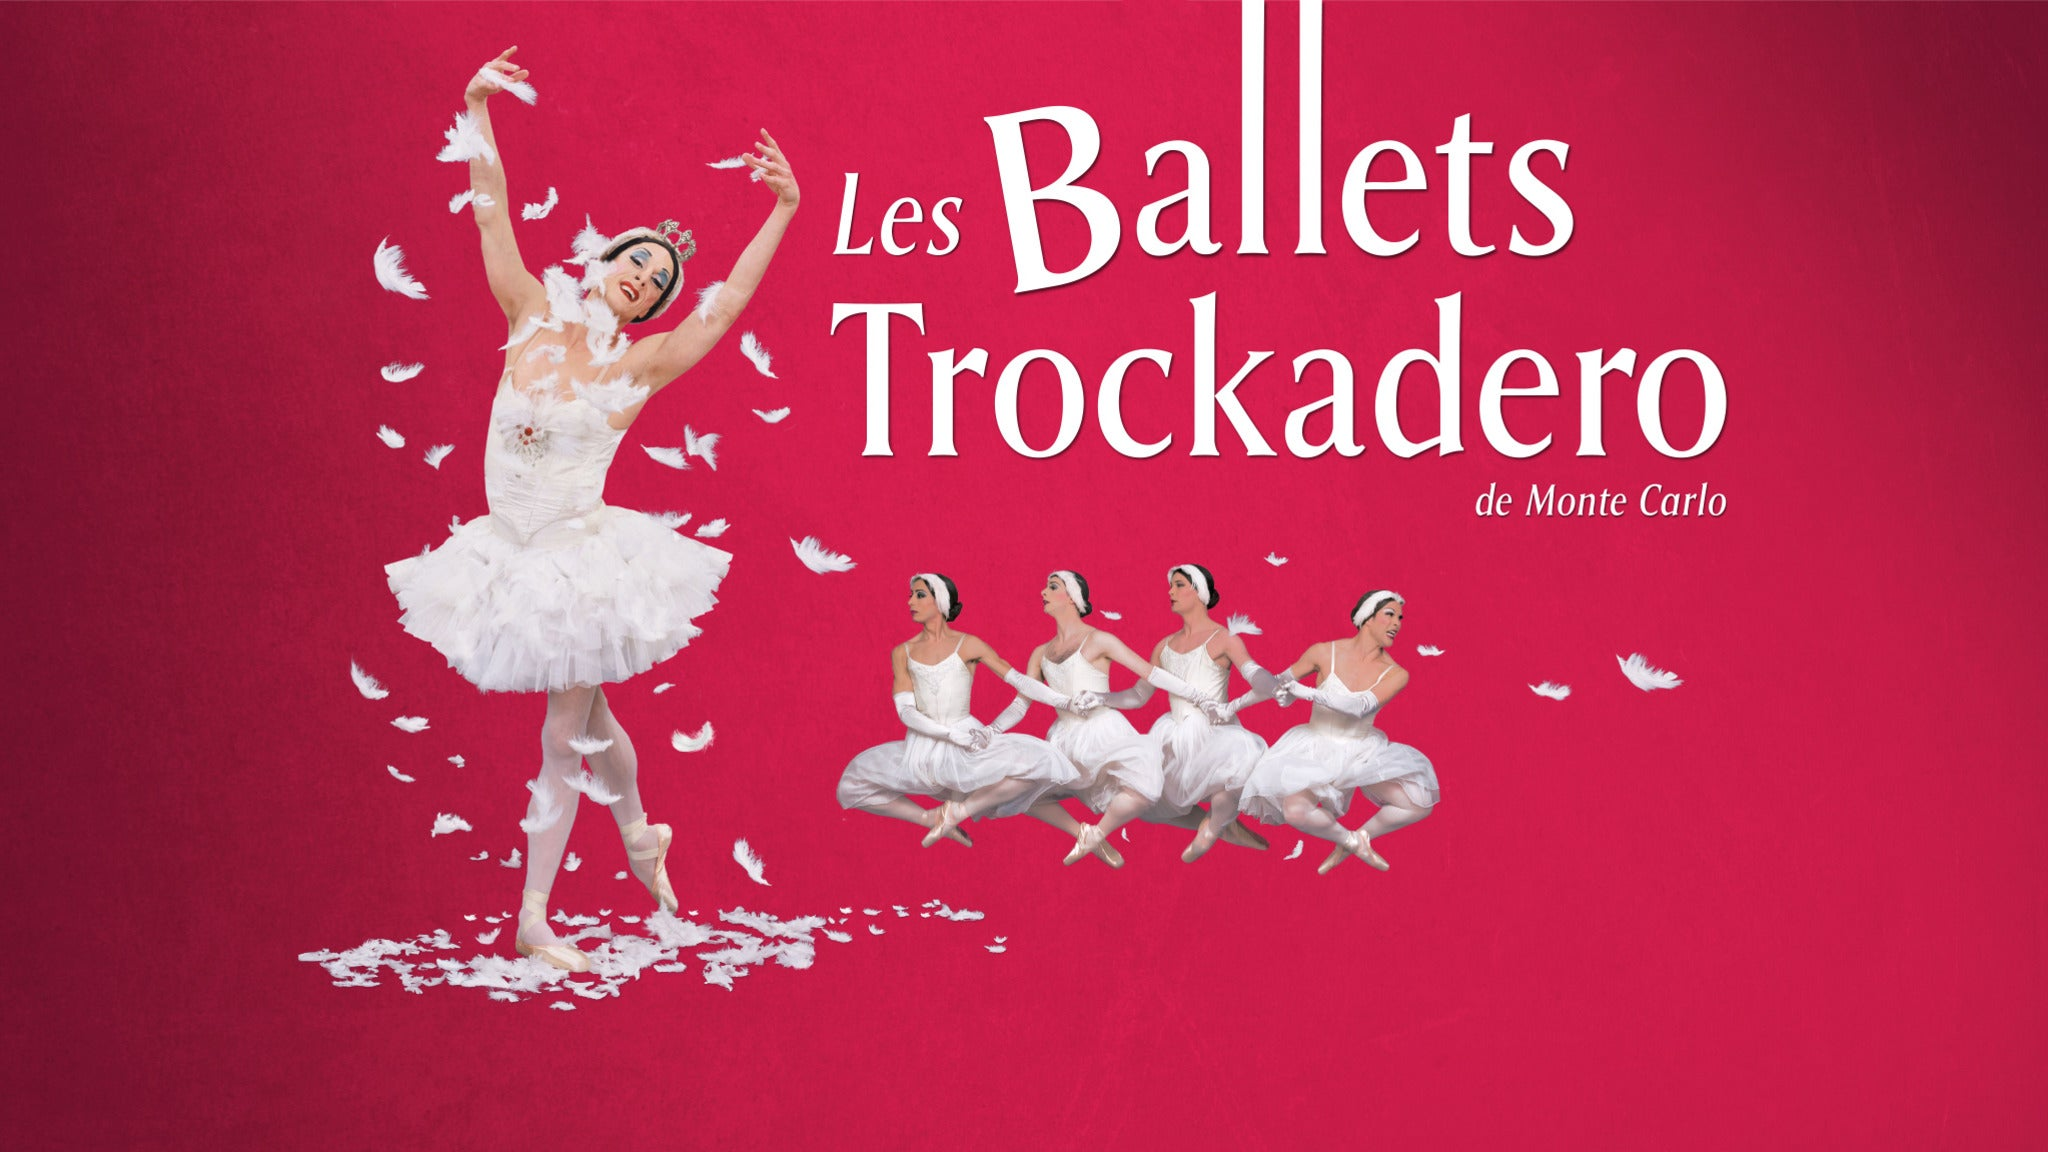 Les Ballets Trockadero De Monte Carlo at Ordway Theatre - Saint Paul, MN 55102